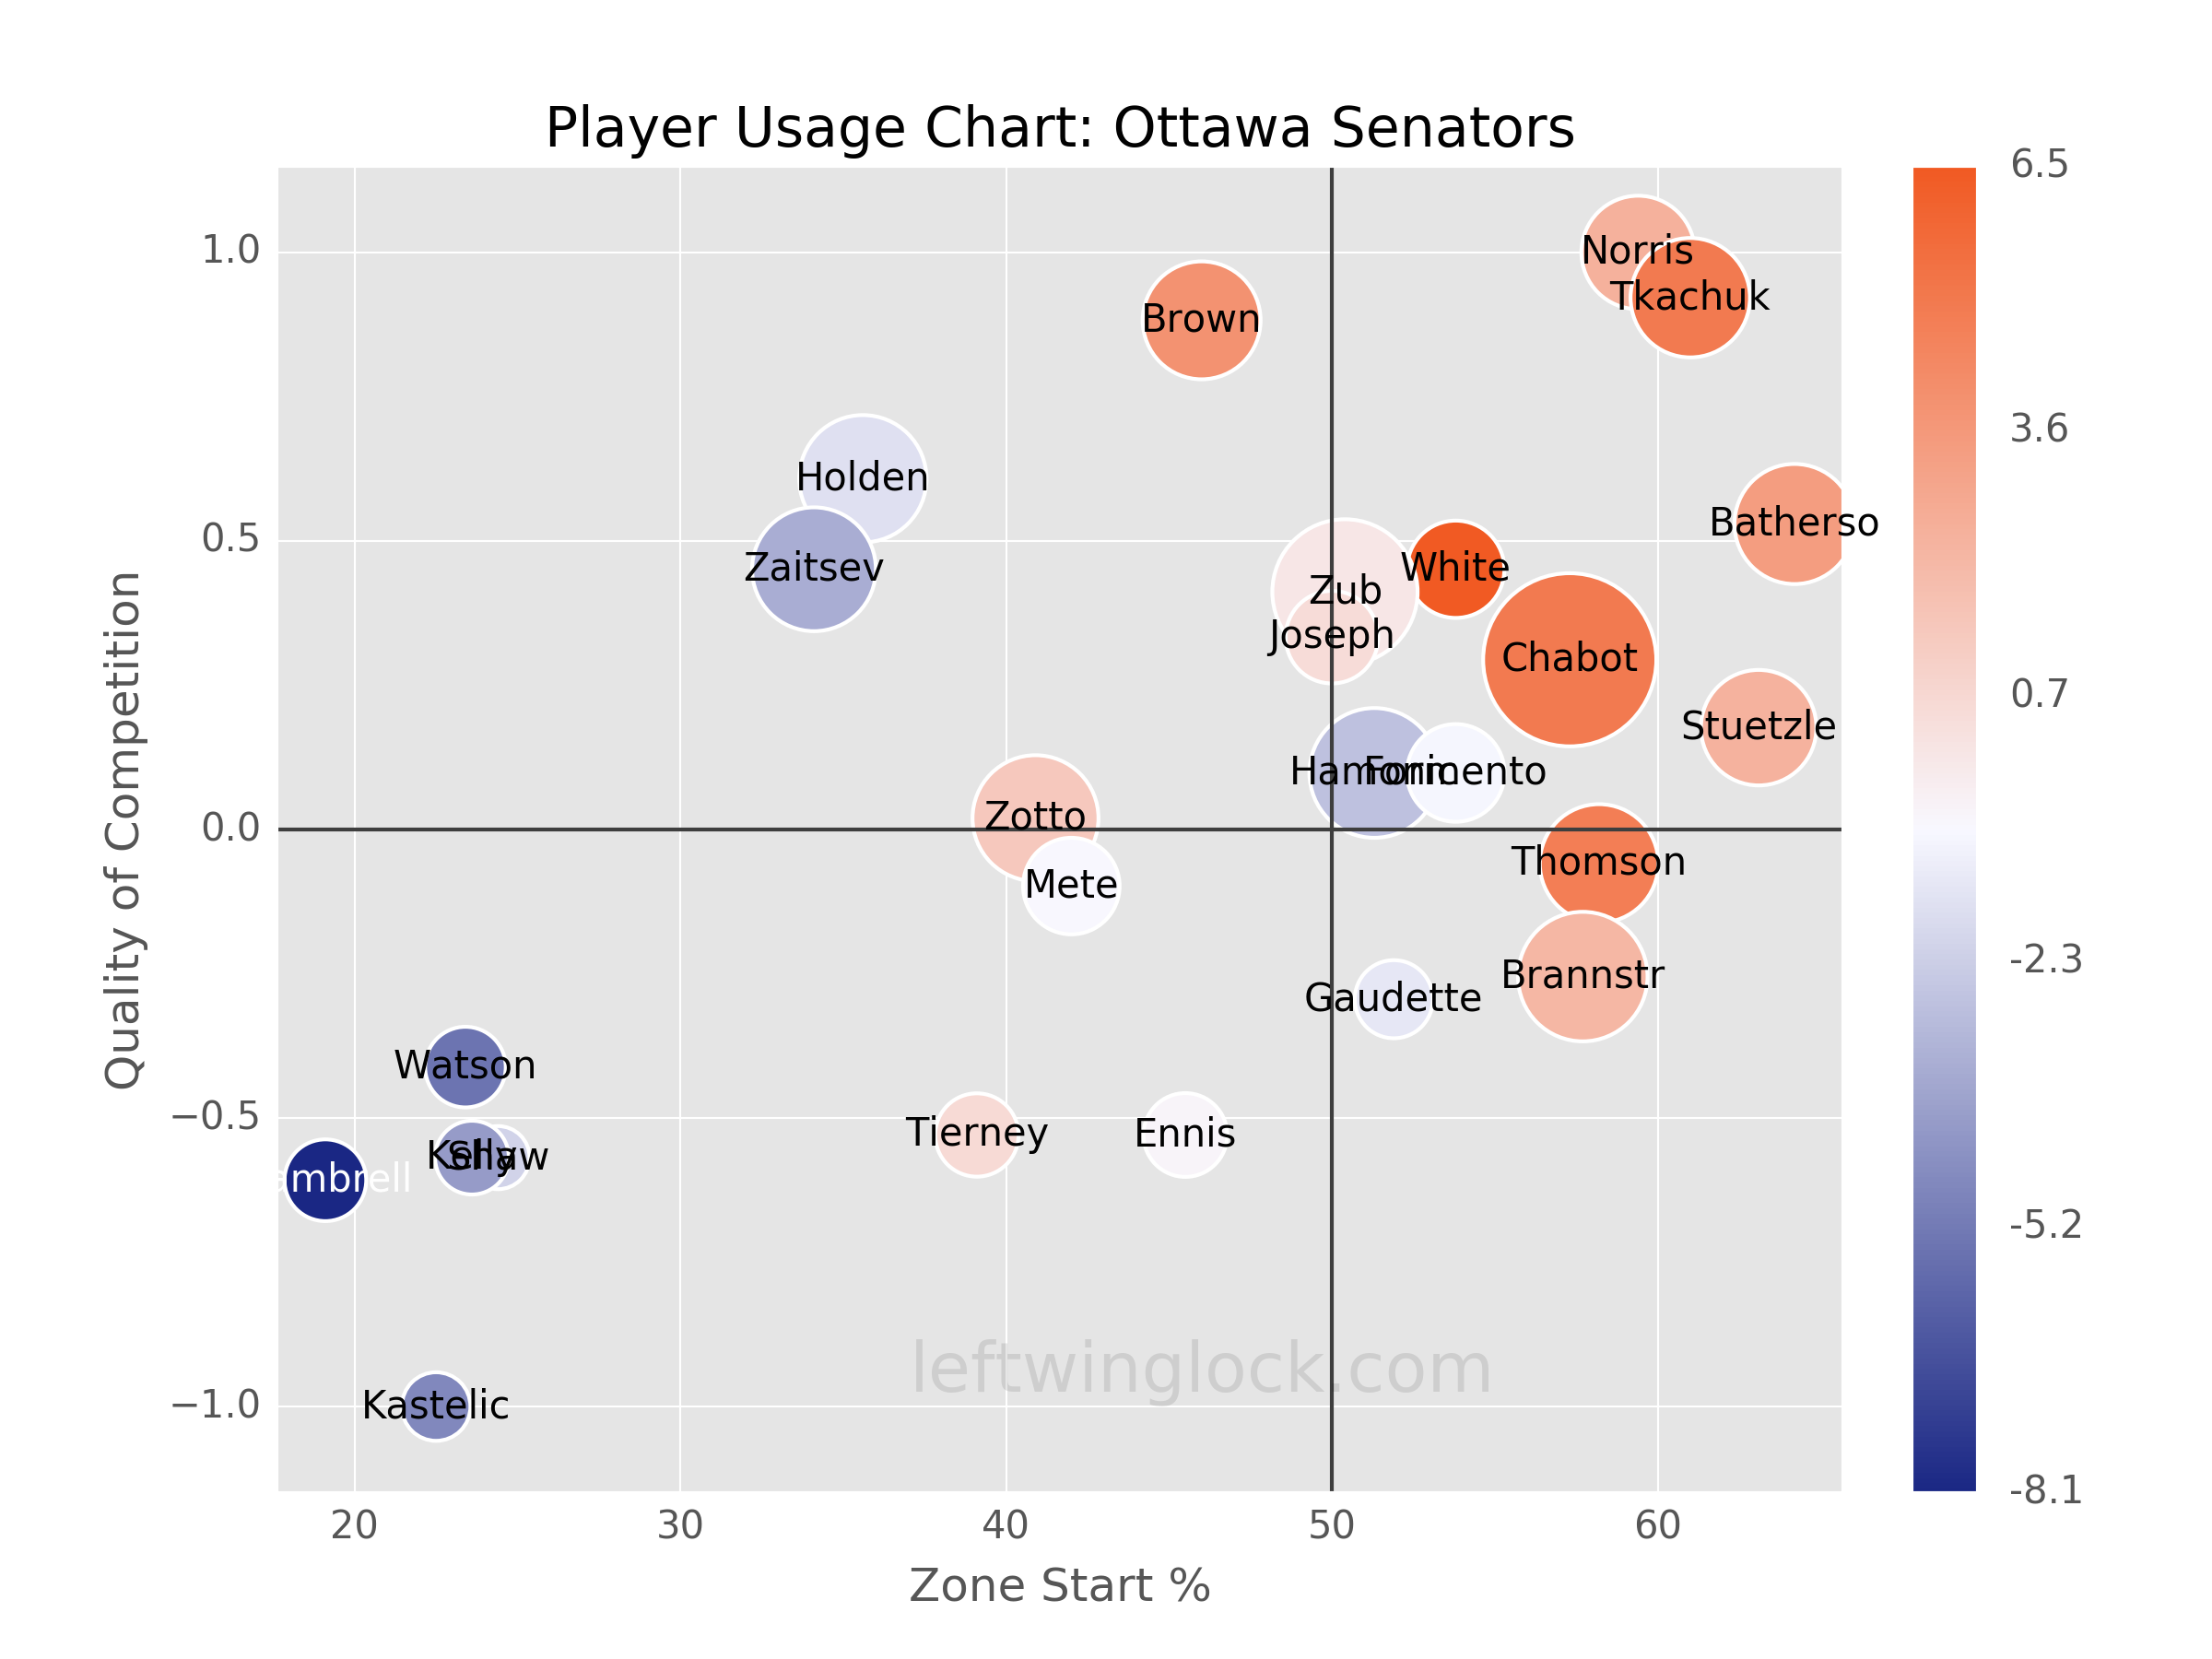 Ottawa Senators Player Usage Chart